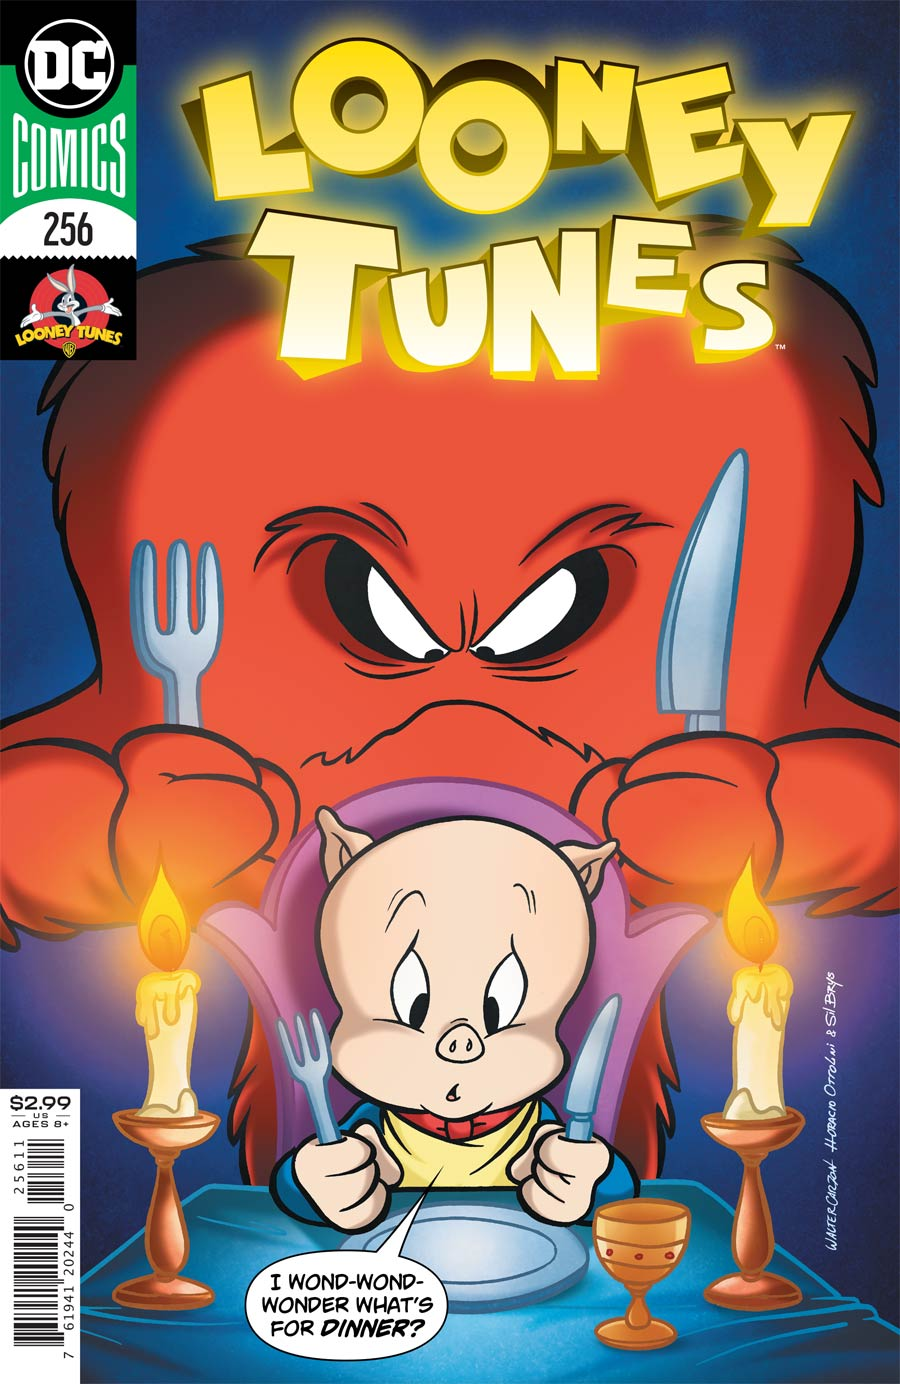 Looney Tunes Vol 3 #256